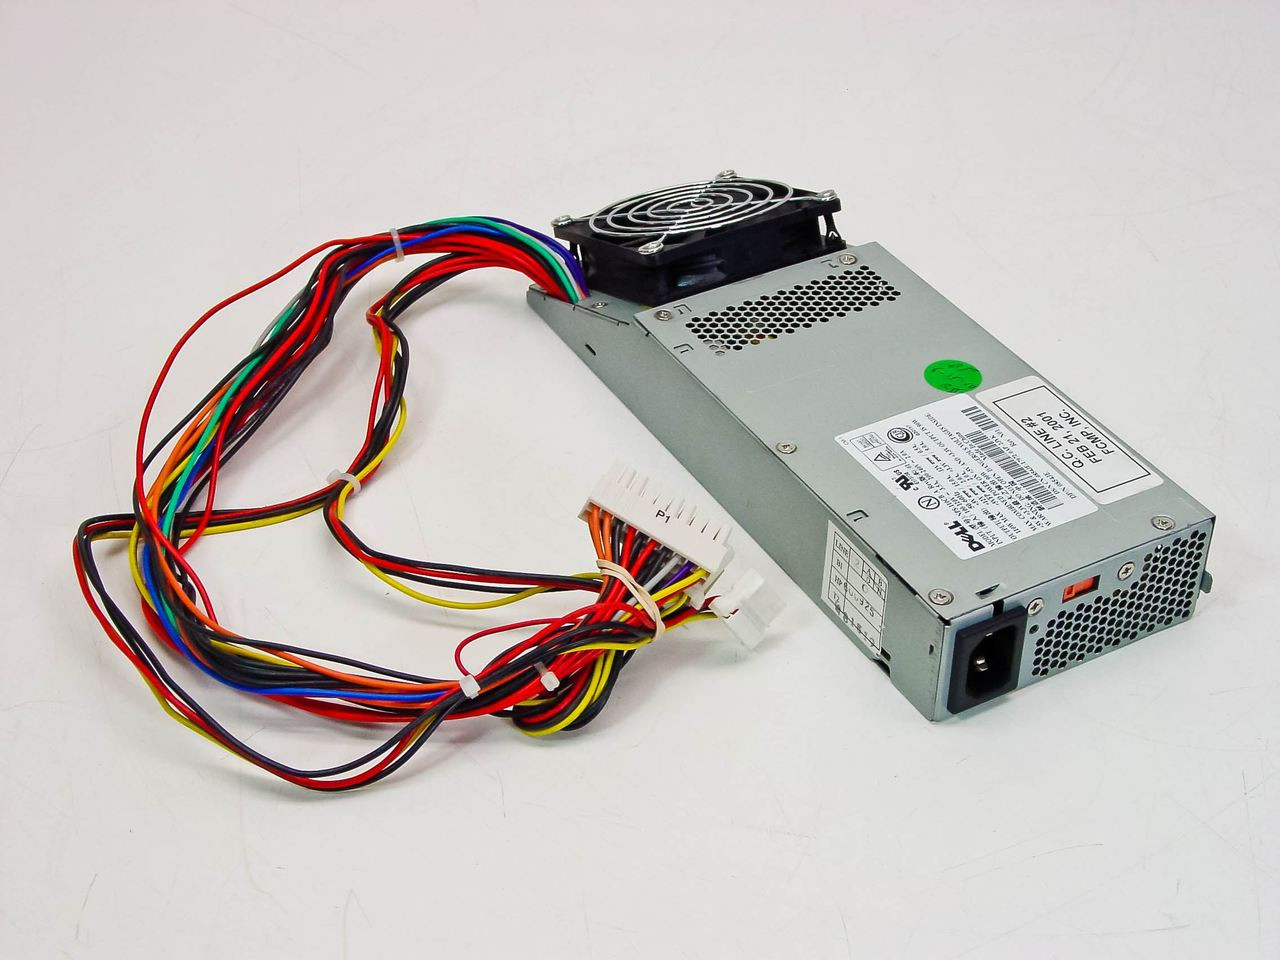 Dell Nps 250kb Power Supply Wiring Diagram Master For 29 Images Compaq